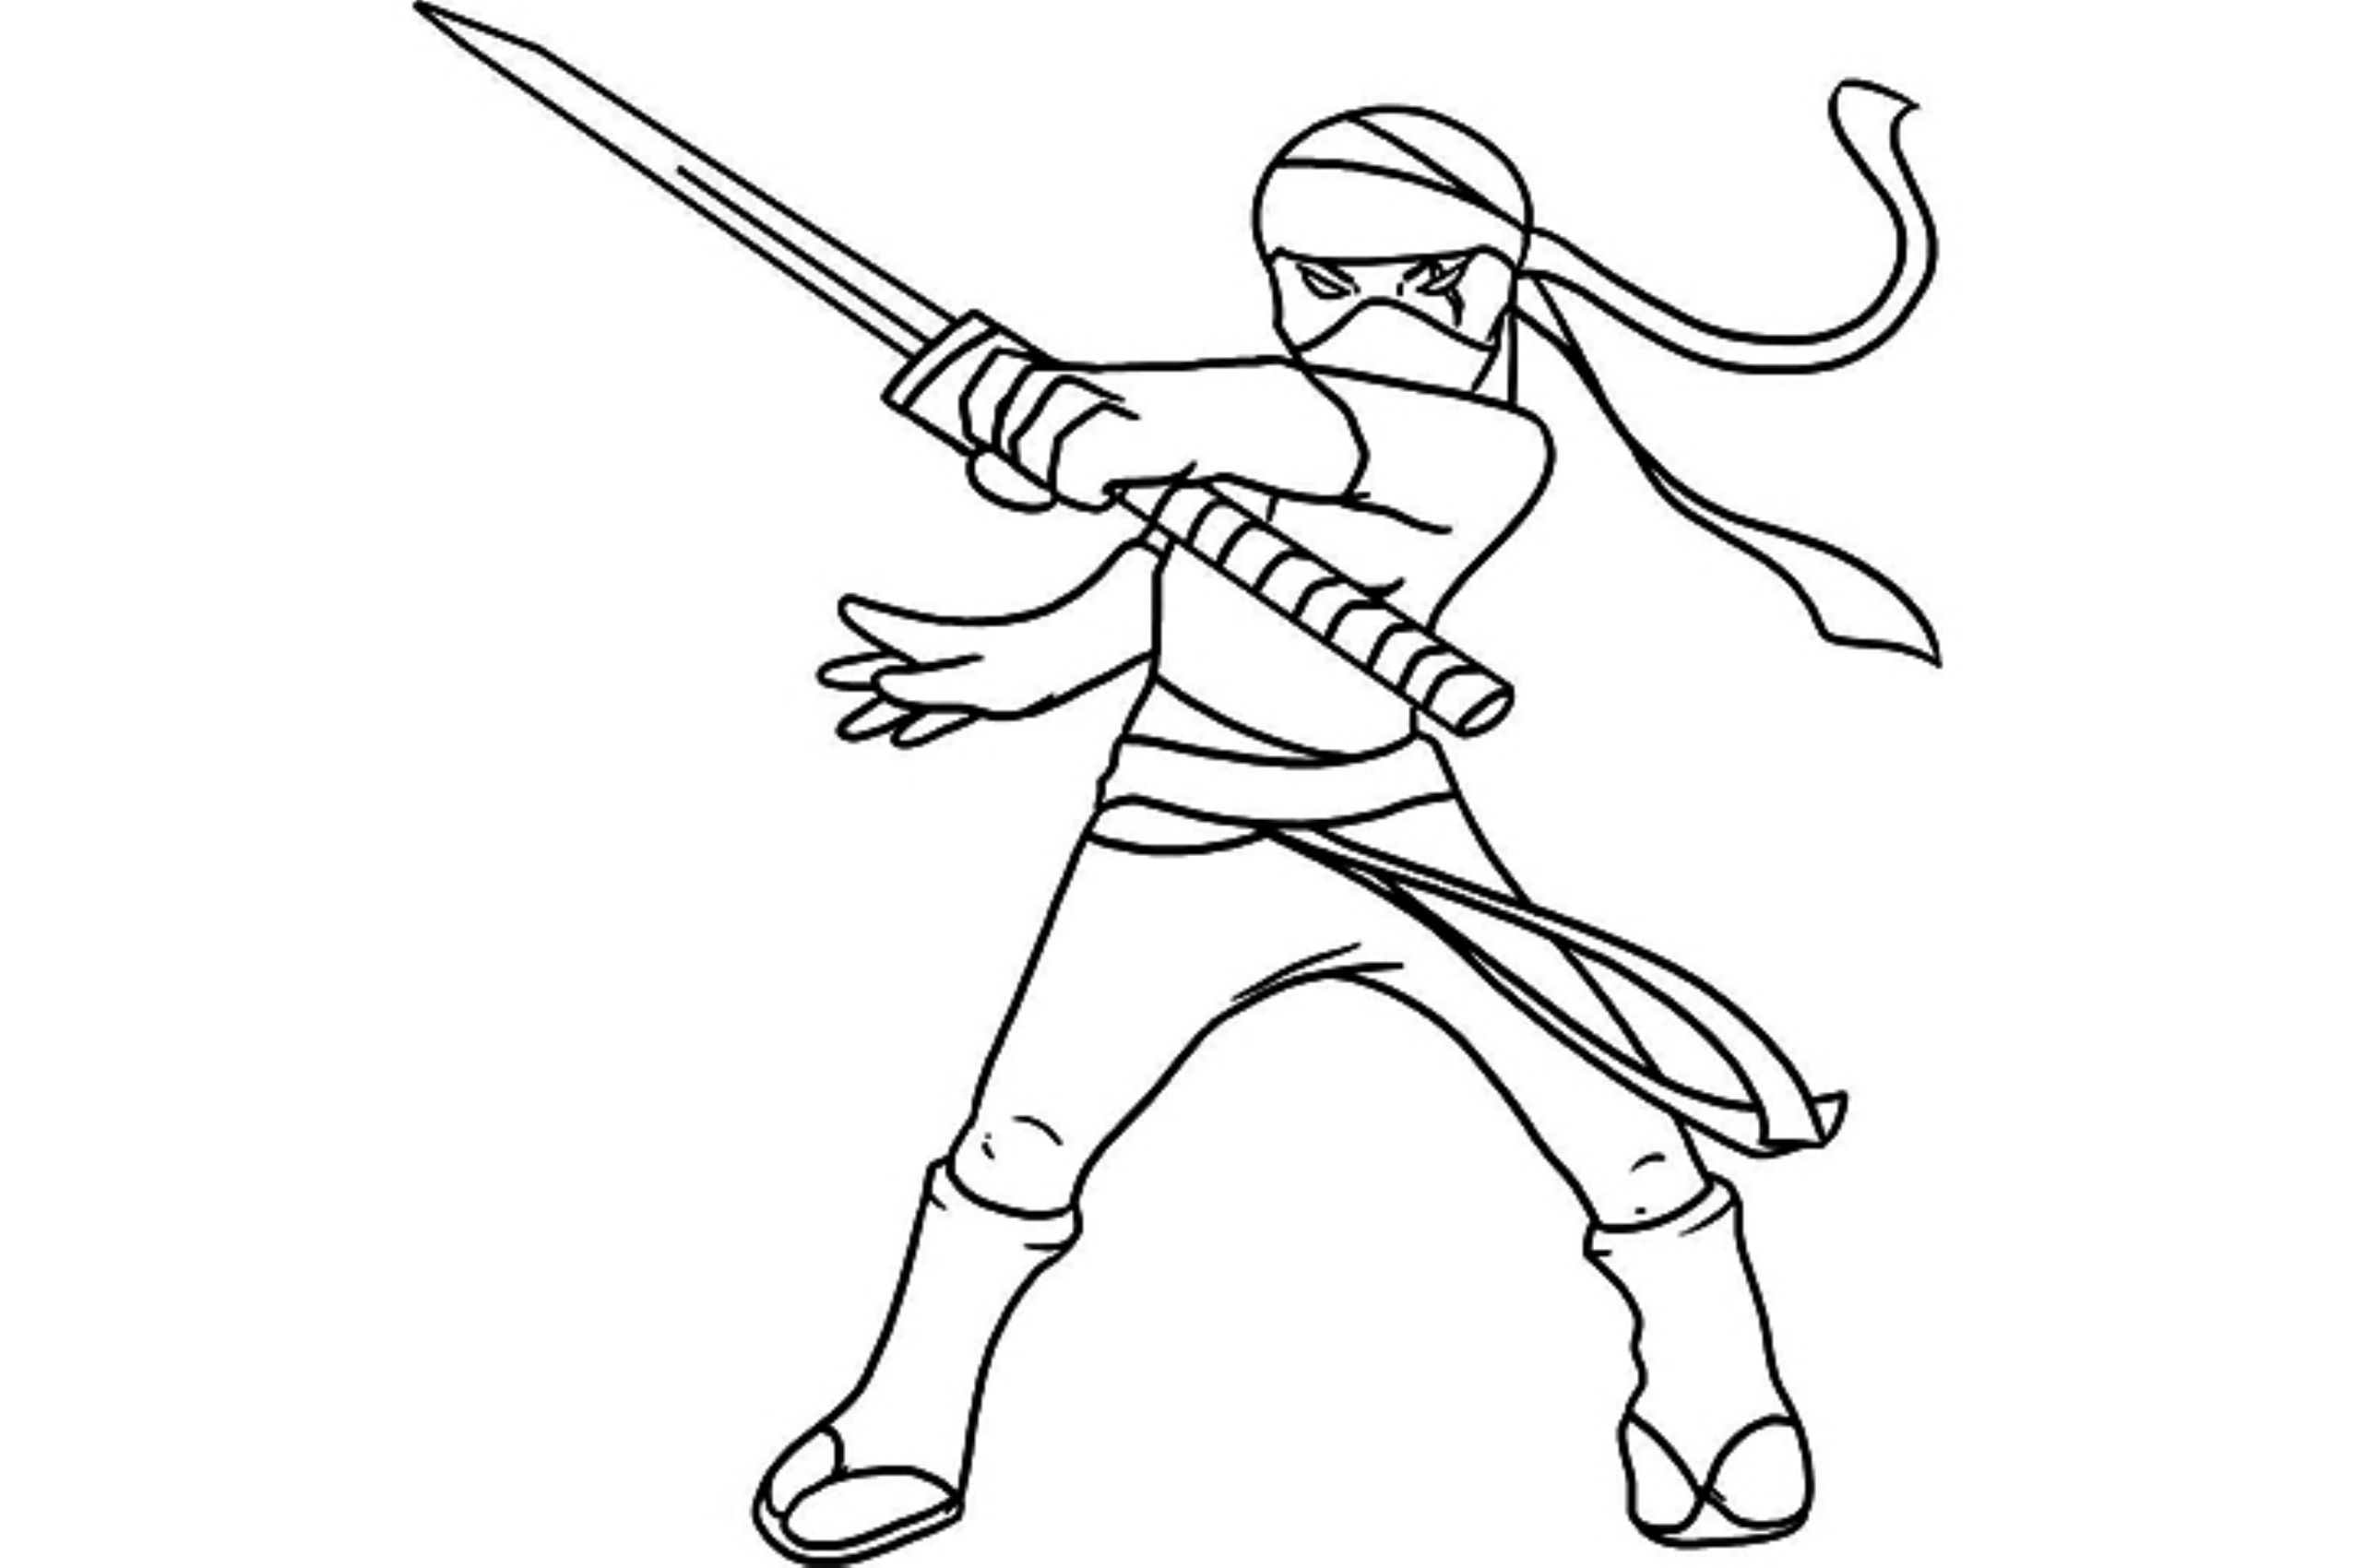 Ninja Characters Printable Coloring Pages